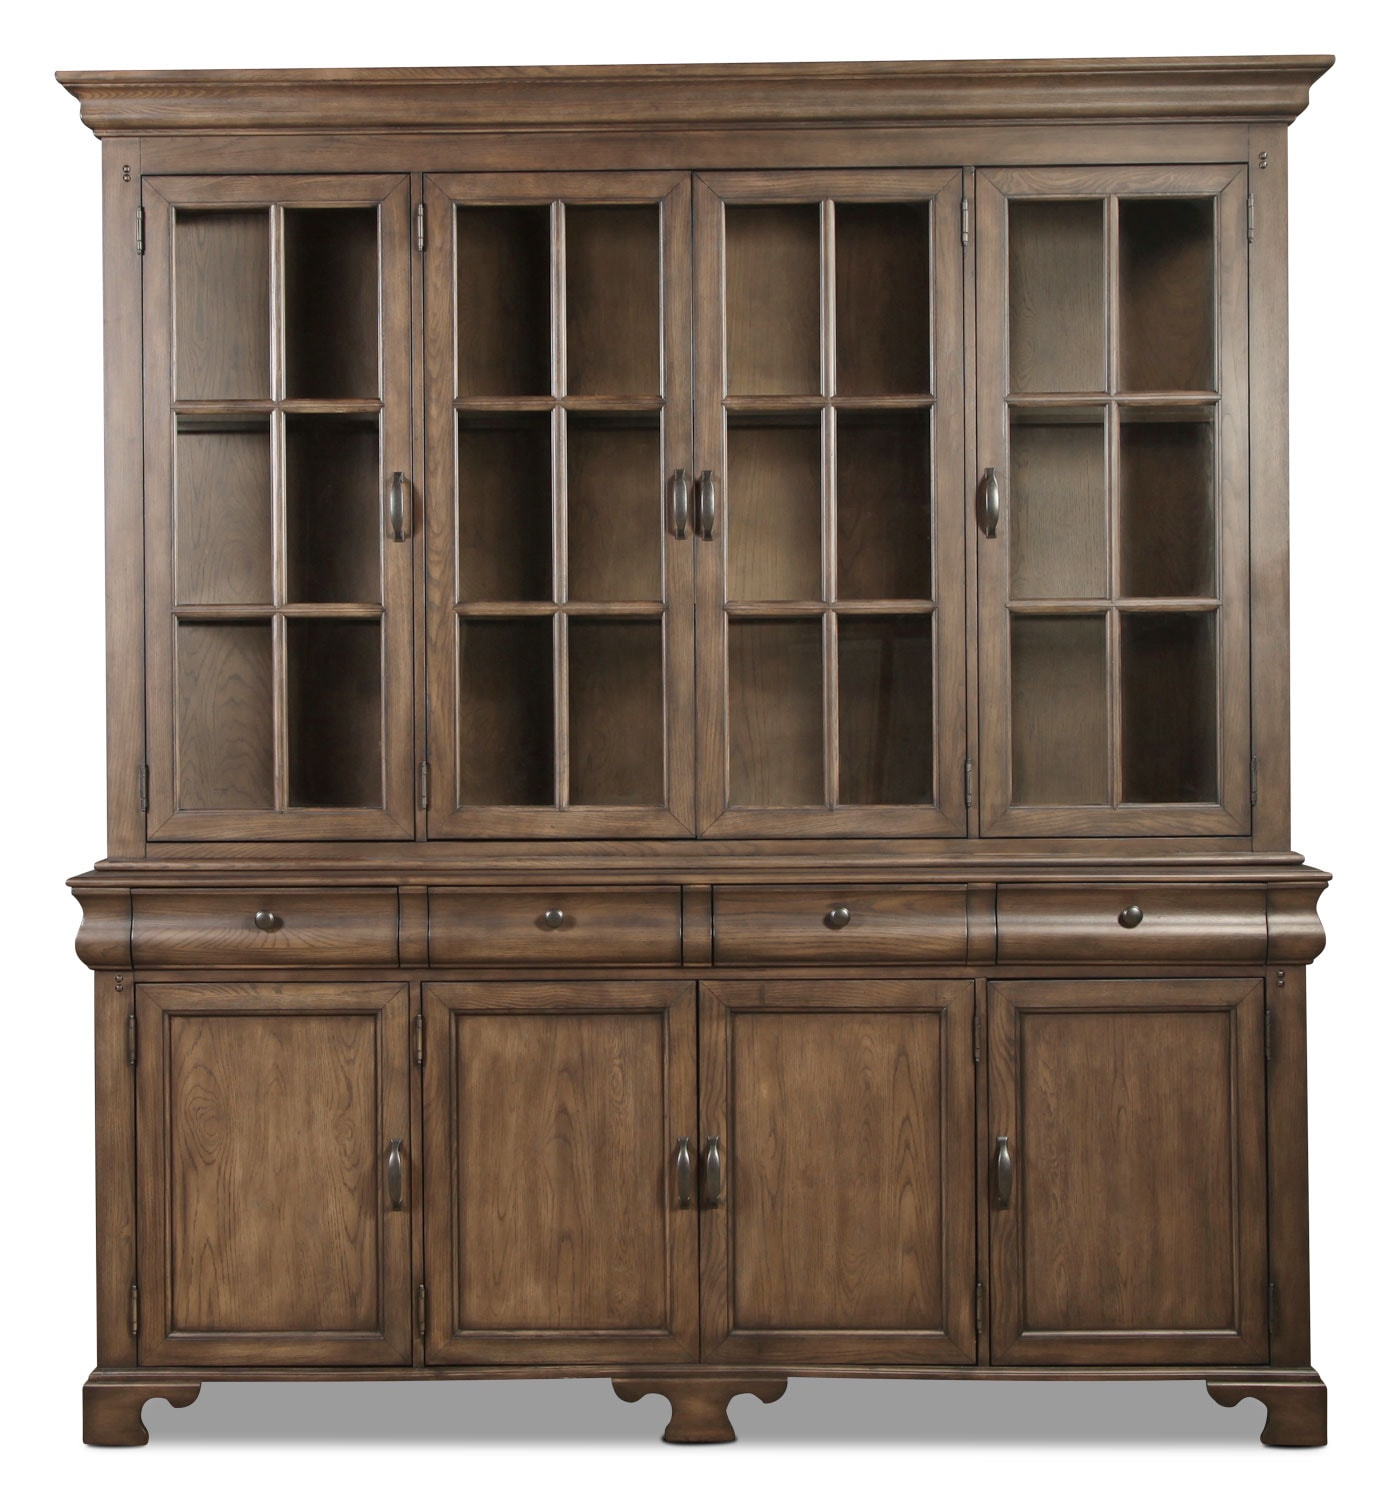 Dining Room Furniture - Magnolia Home Traditional Buffet and Hutch